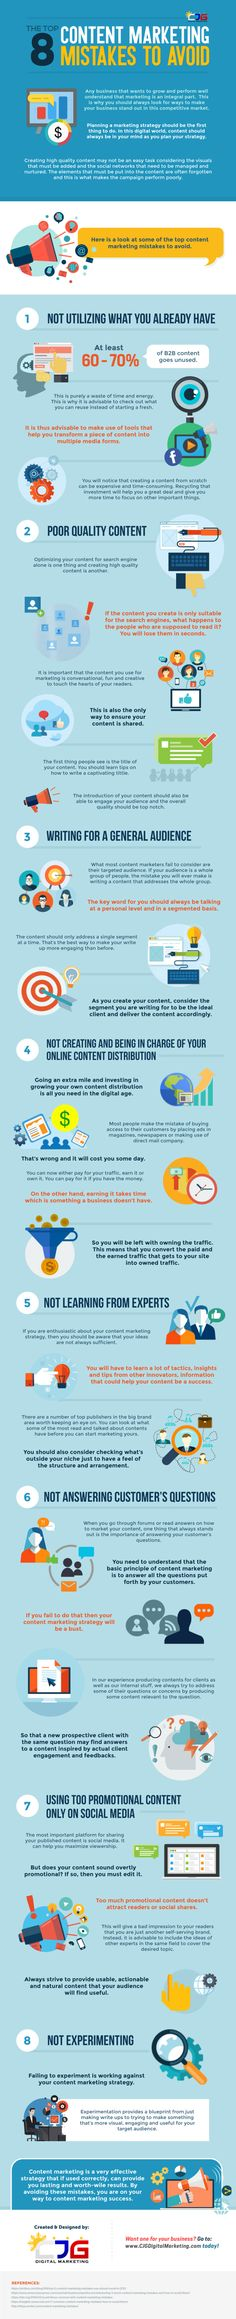 The Top 8 Content Marketing Mistakes To Avoid [Infographic] - /redwebdesign/